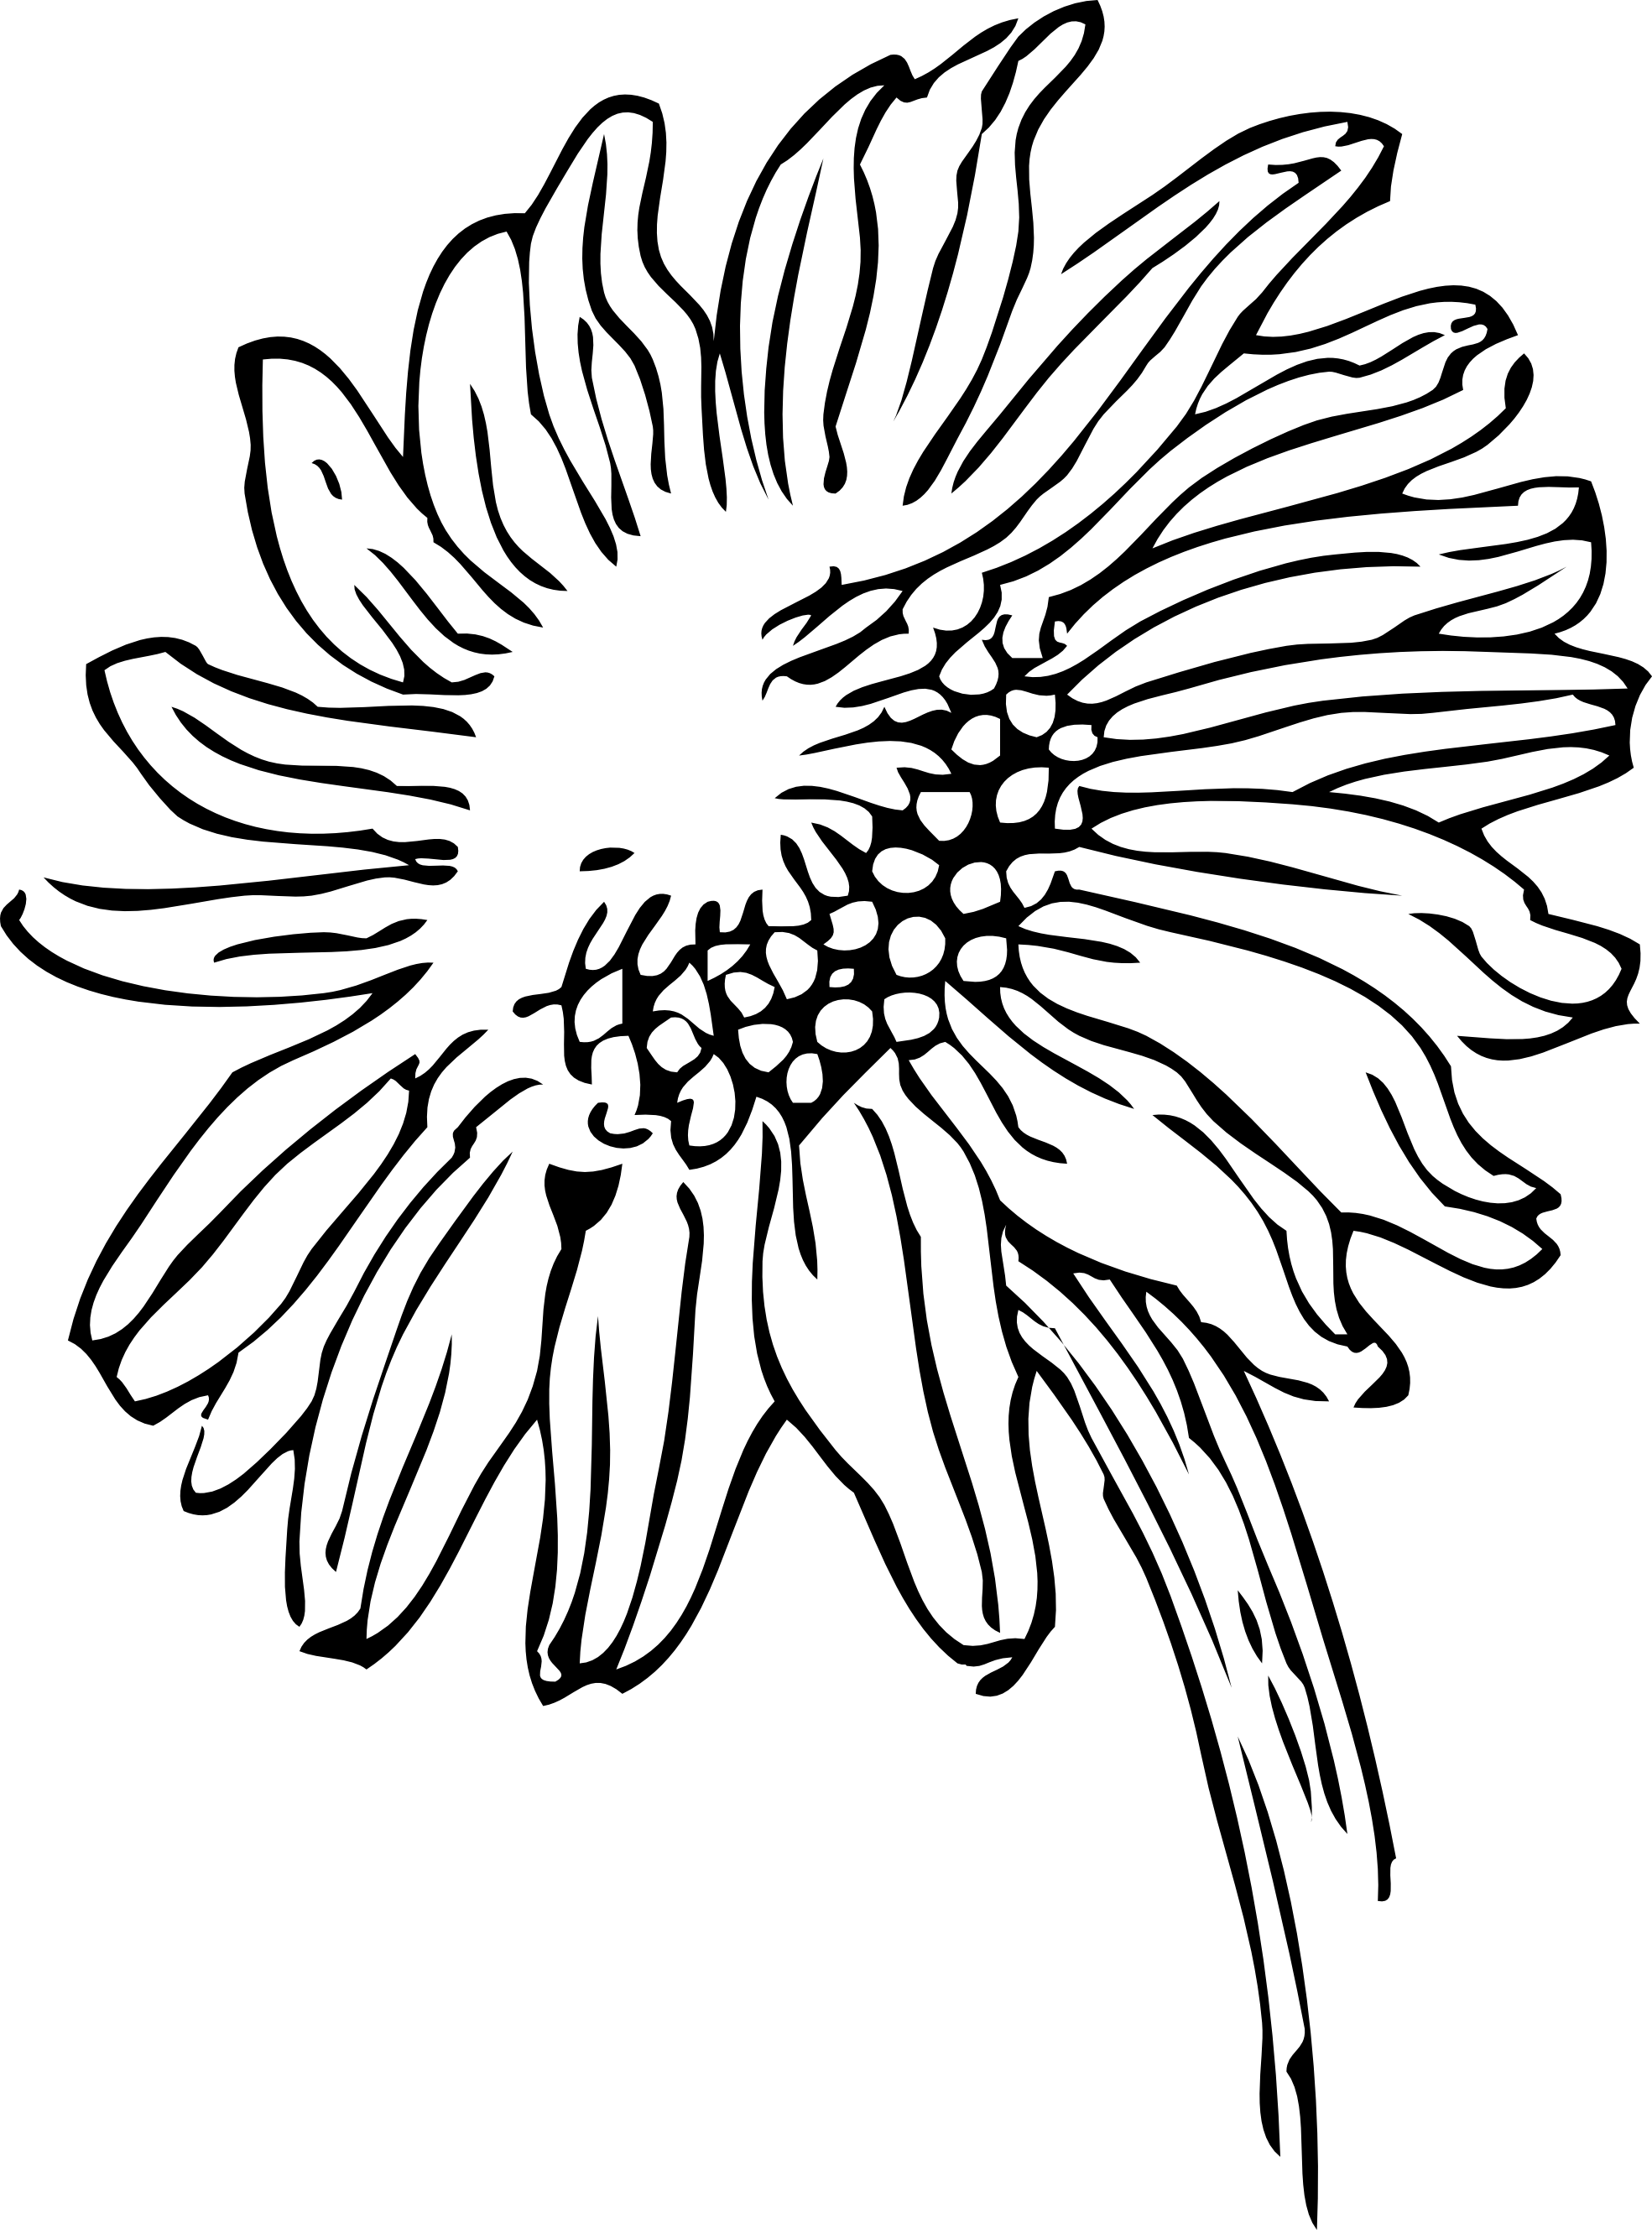 Art Line Drawings - ClipArt Best